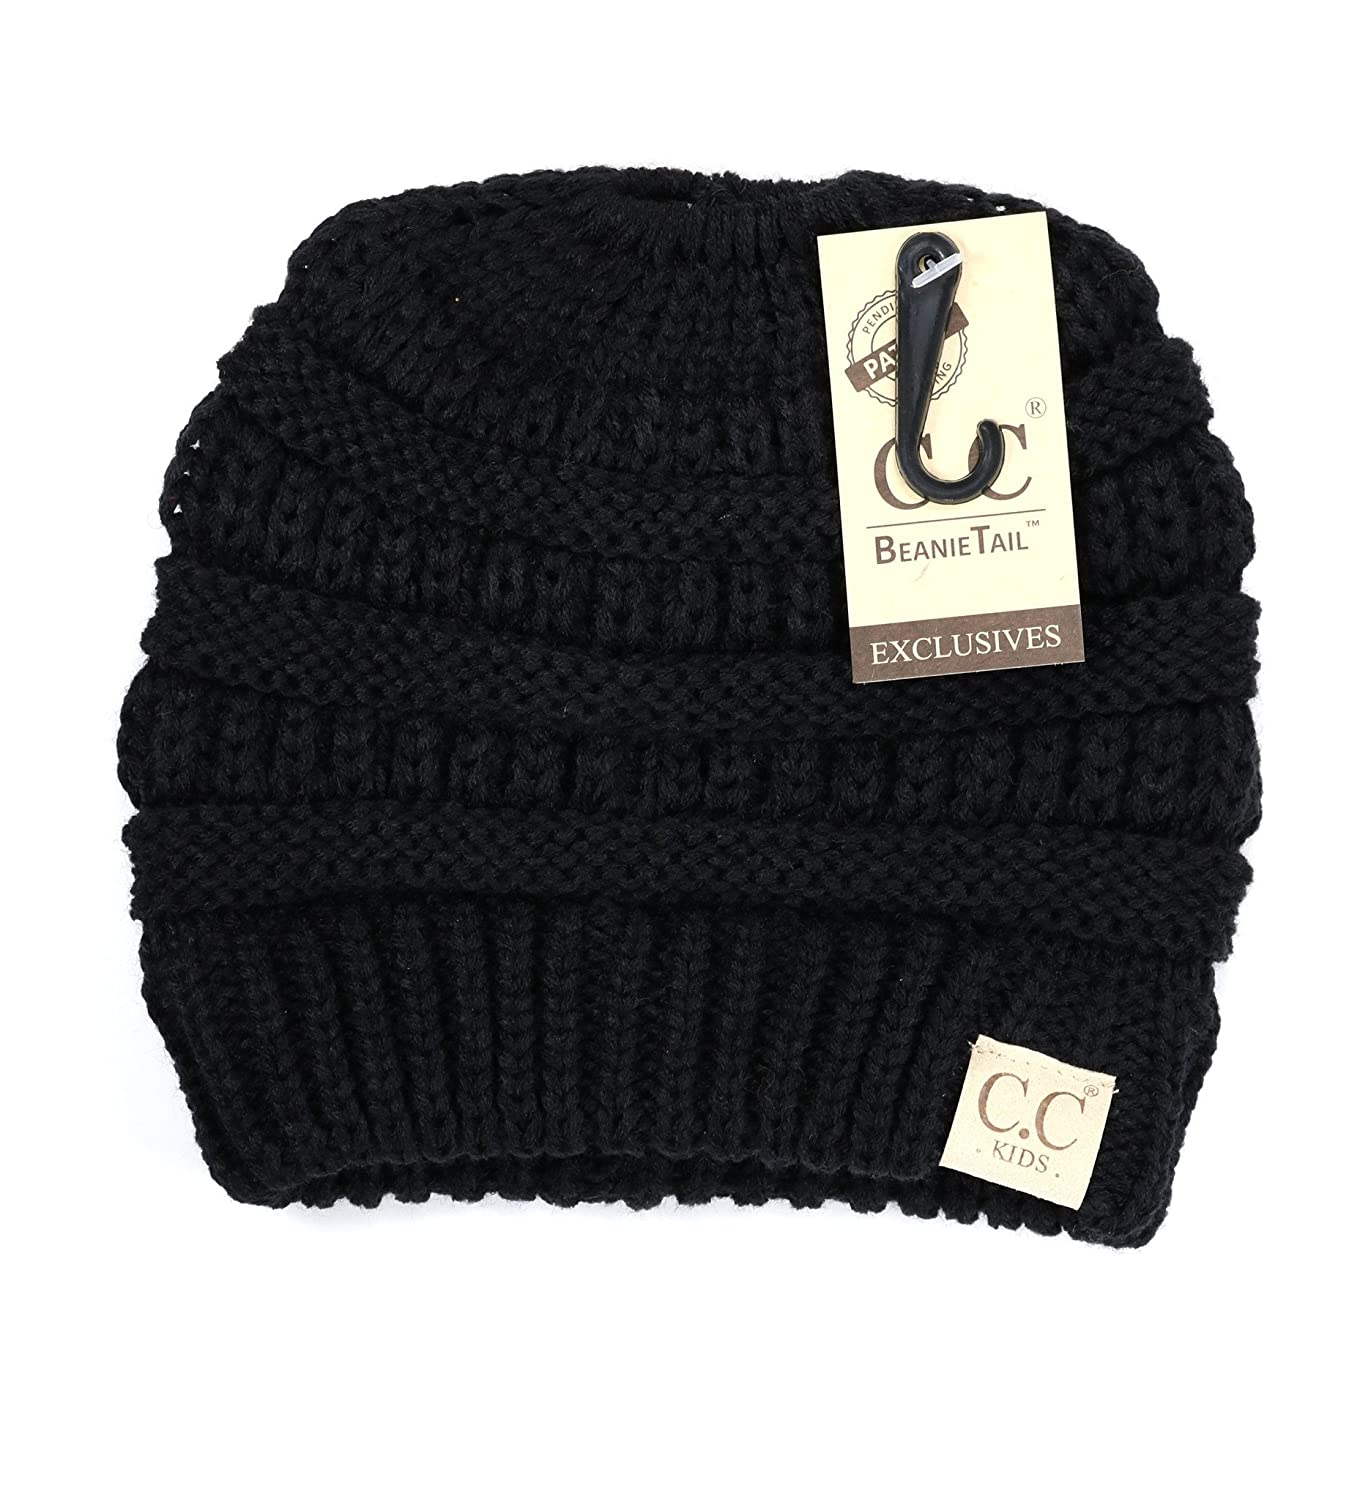 Women s Kids Solid Classic CC Beanie Tail One Size Black at Amazon Women s  Clothing store  6438010ee9b